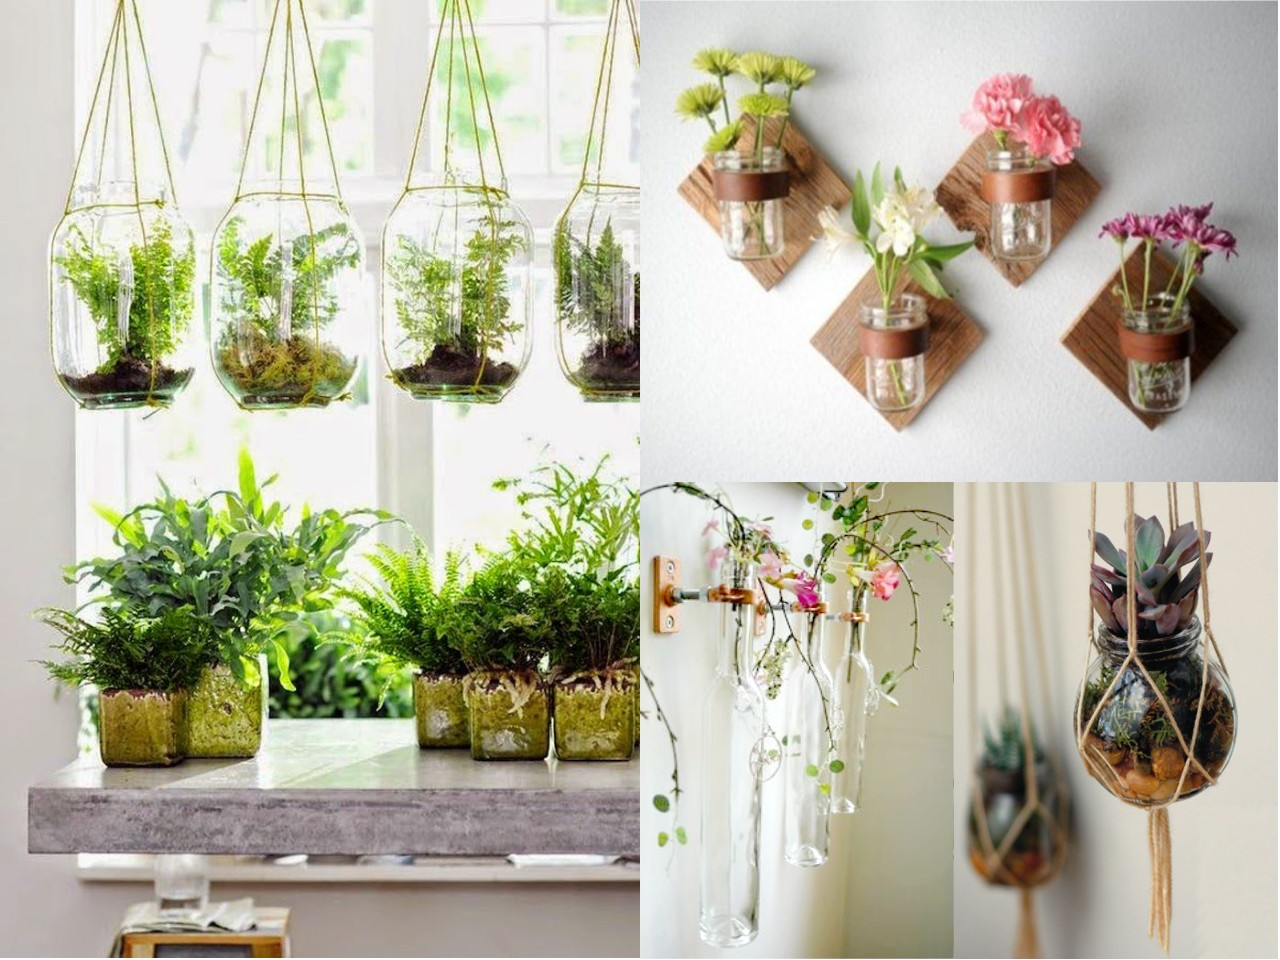 Decoration42 decoracion con plantas de interior for Ideas para decorar interiores con plantas